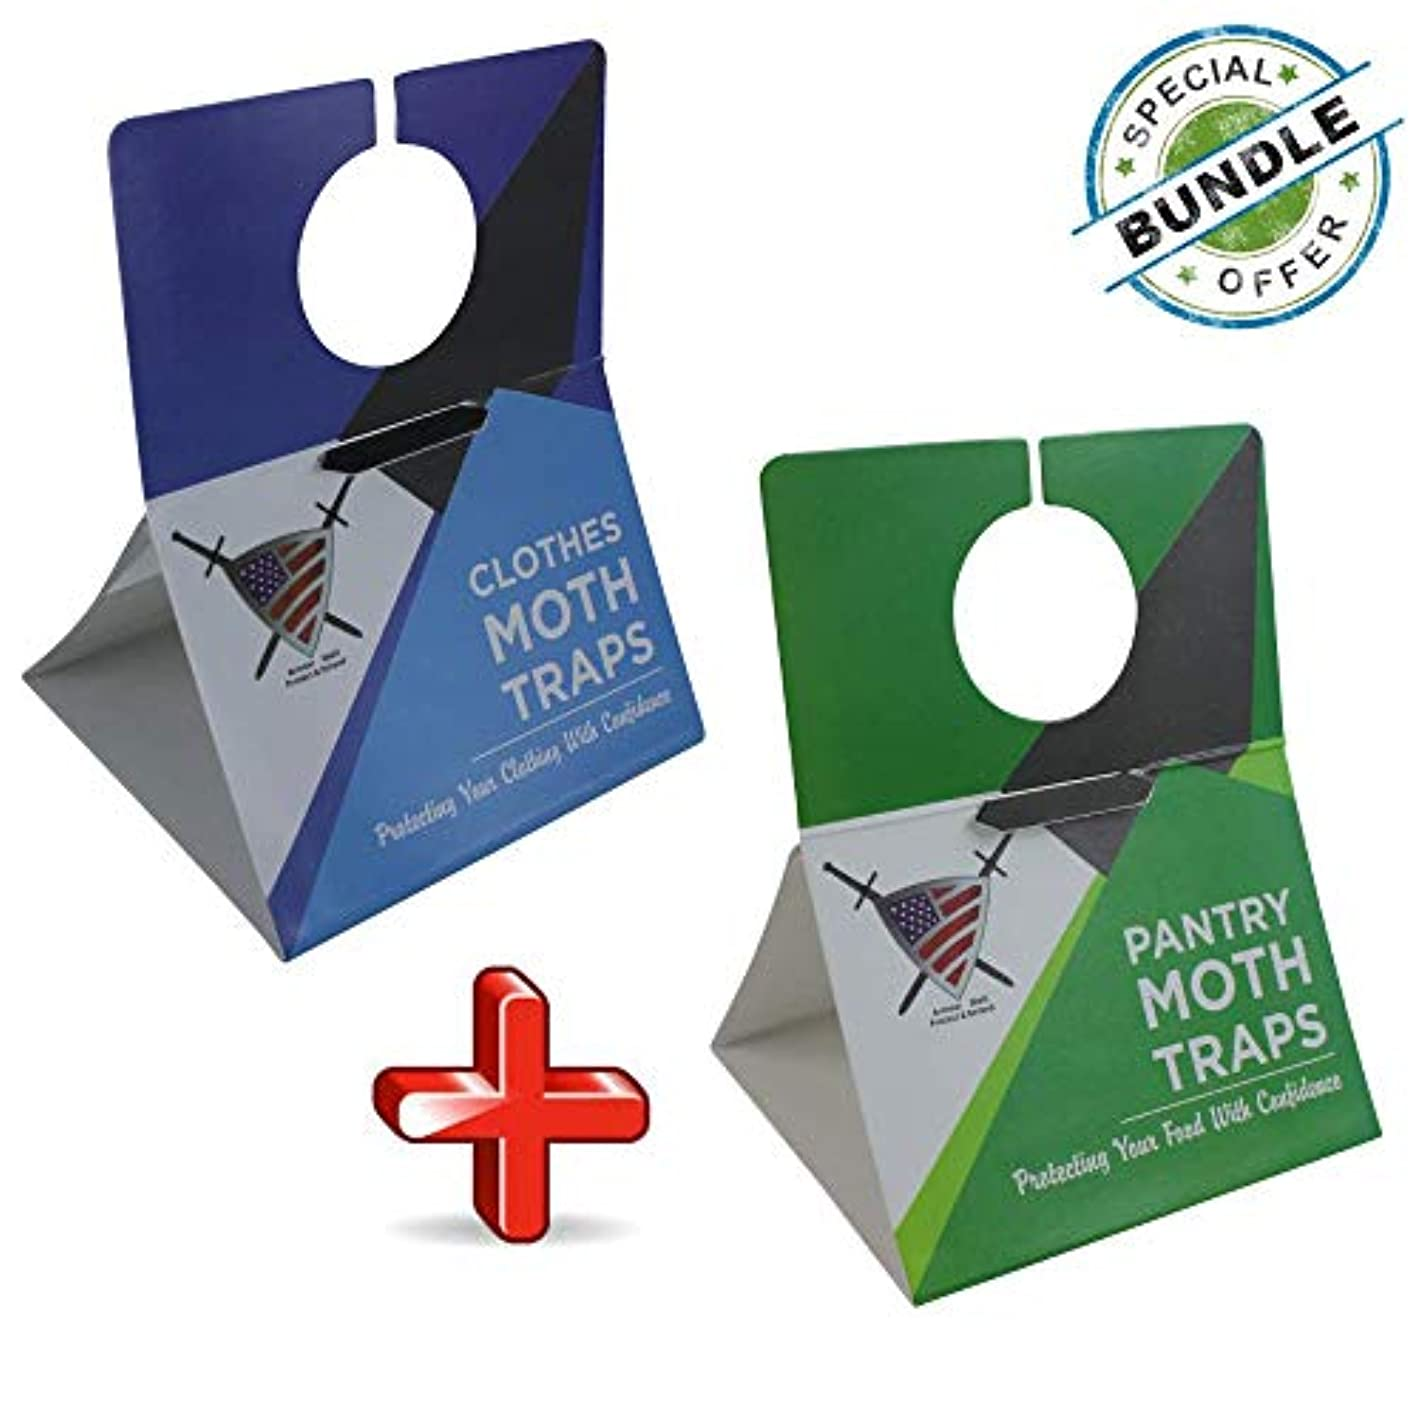 Moth Traps for Clothes and Pantry - Moths Protection with Unique Hanging Design, Protect with Non Toxic Formula That is Safe for Your Family and Long Lasting. (6 Pack Clothes/6 Pack Pantry)